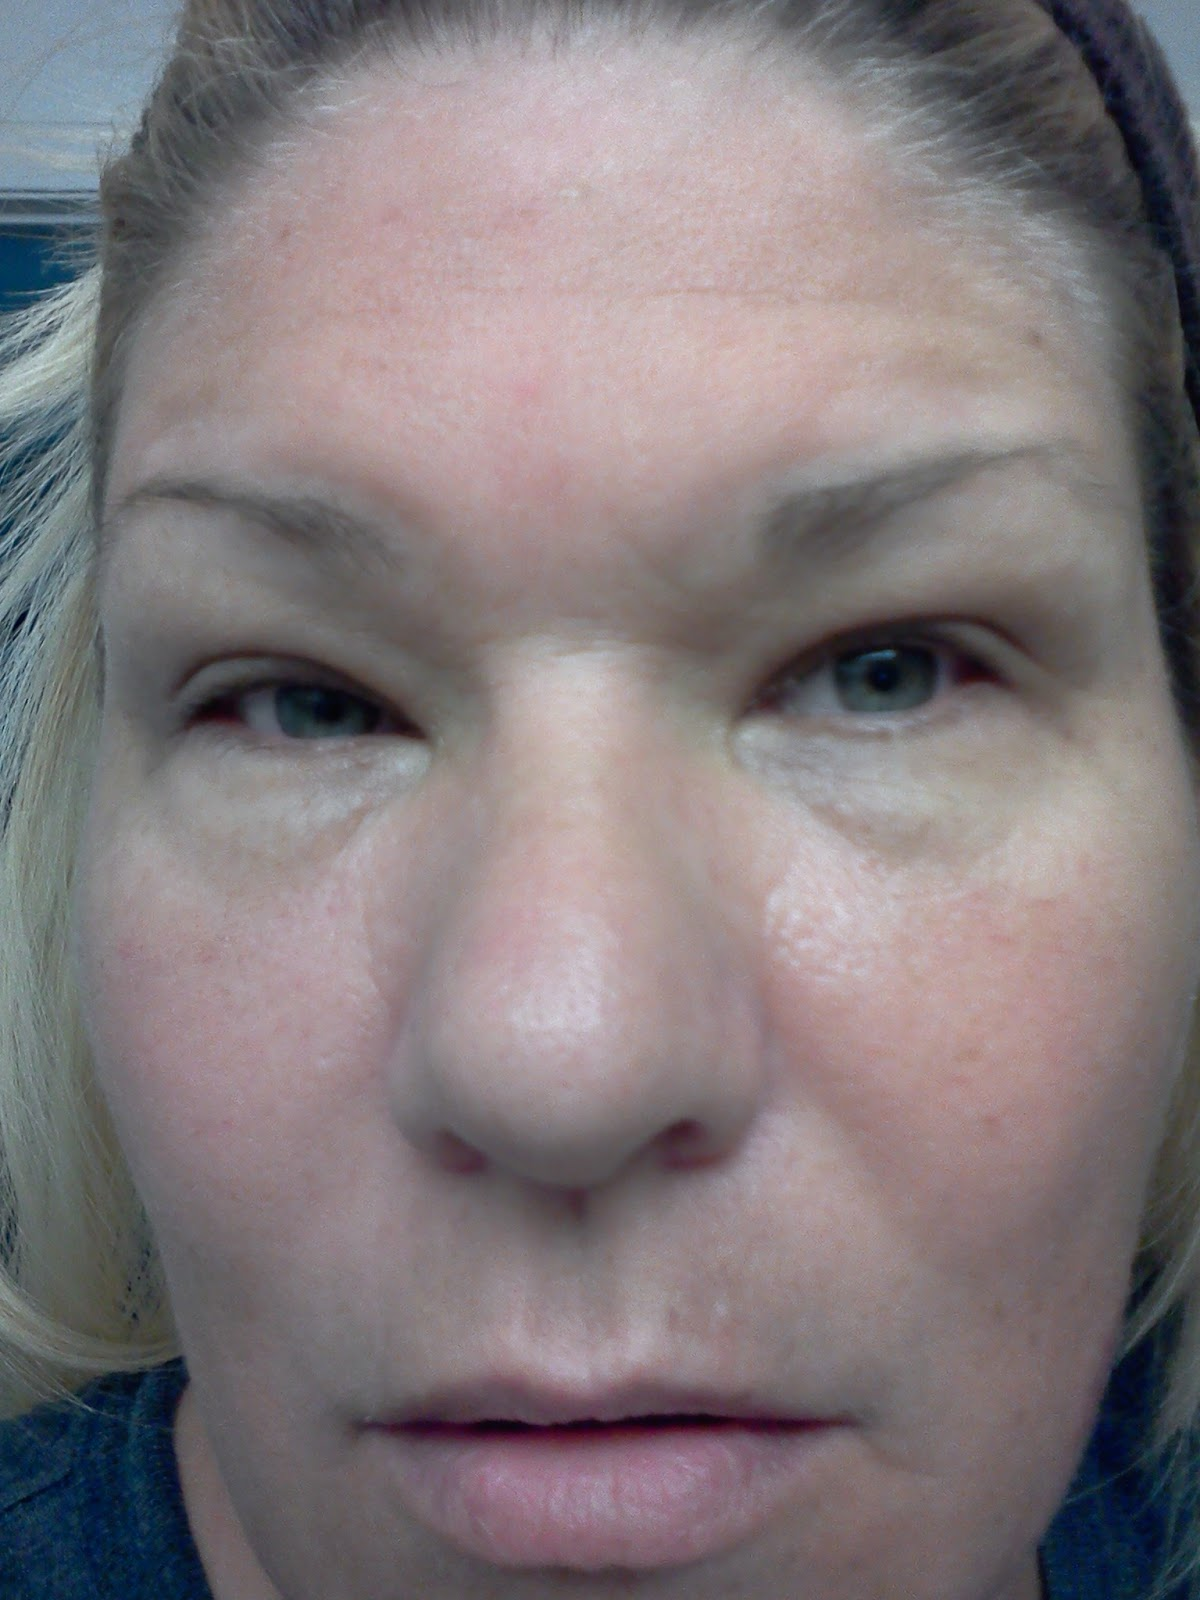 facial swelling and concrete rash